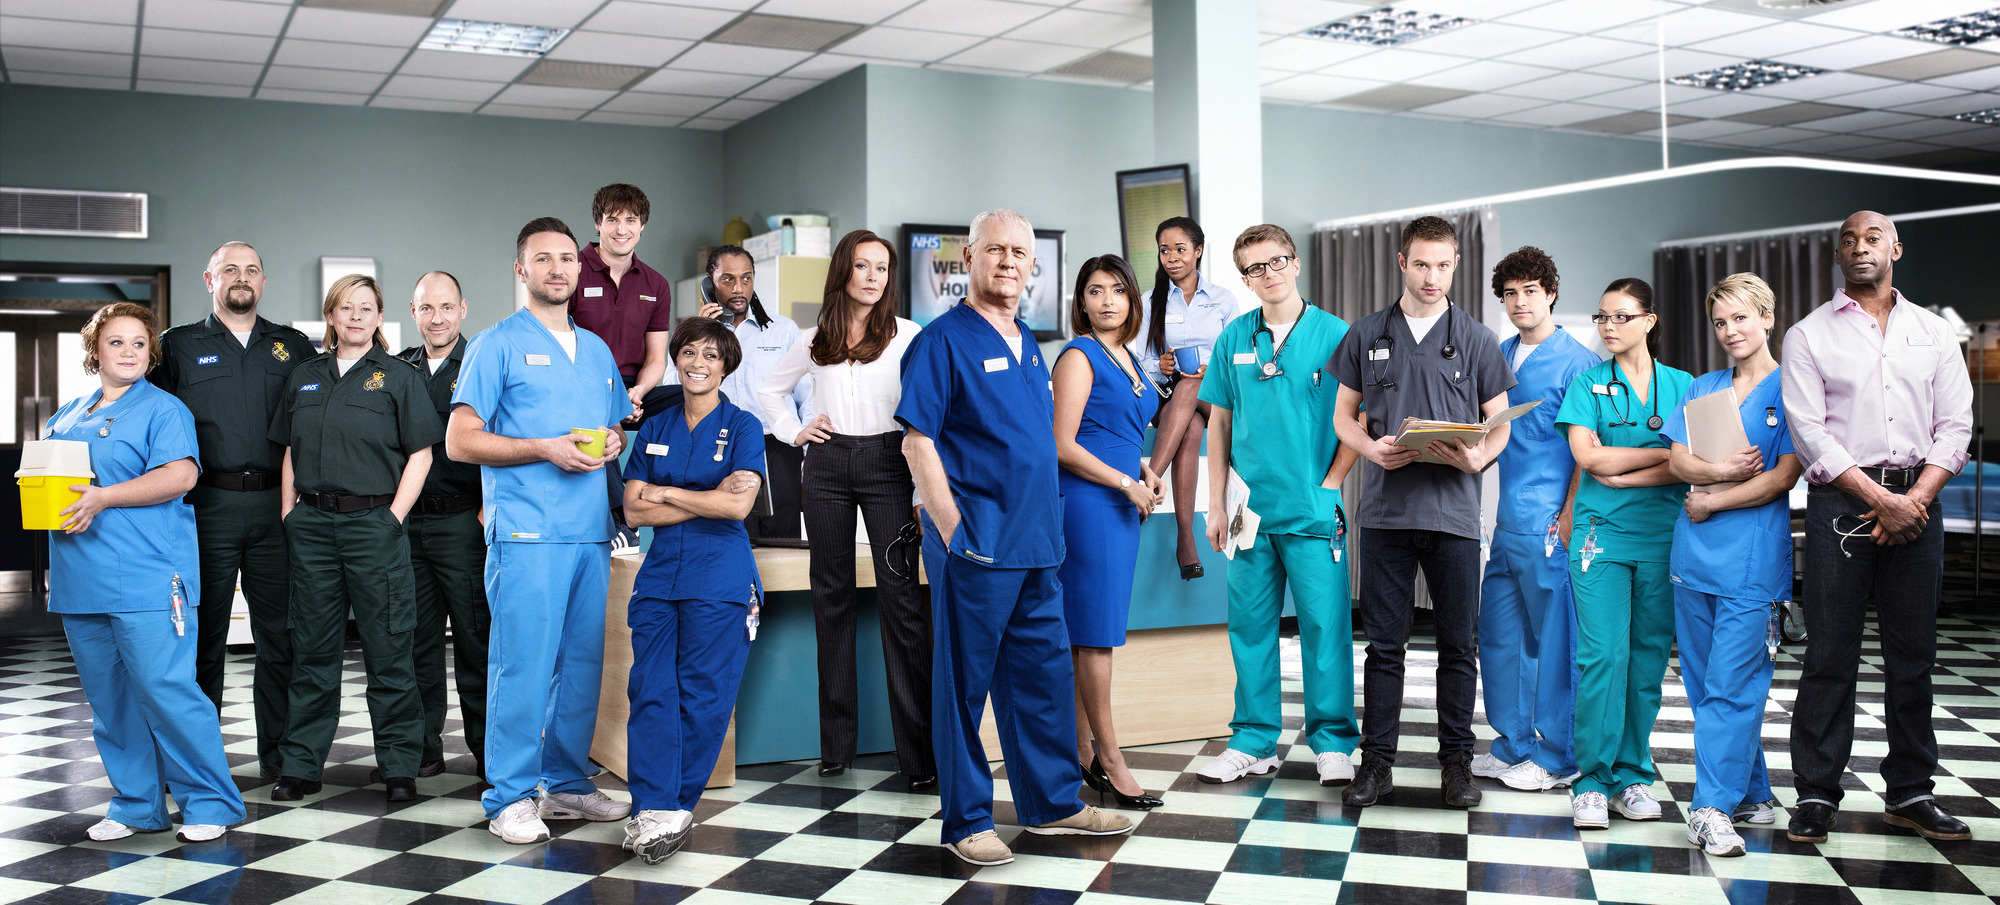 Casualty: 10 juicy teasers from The Index Case